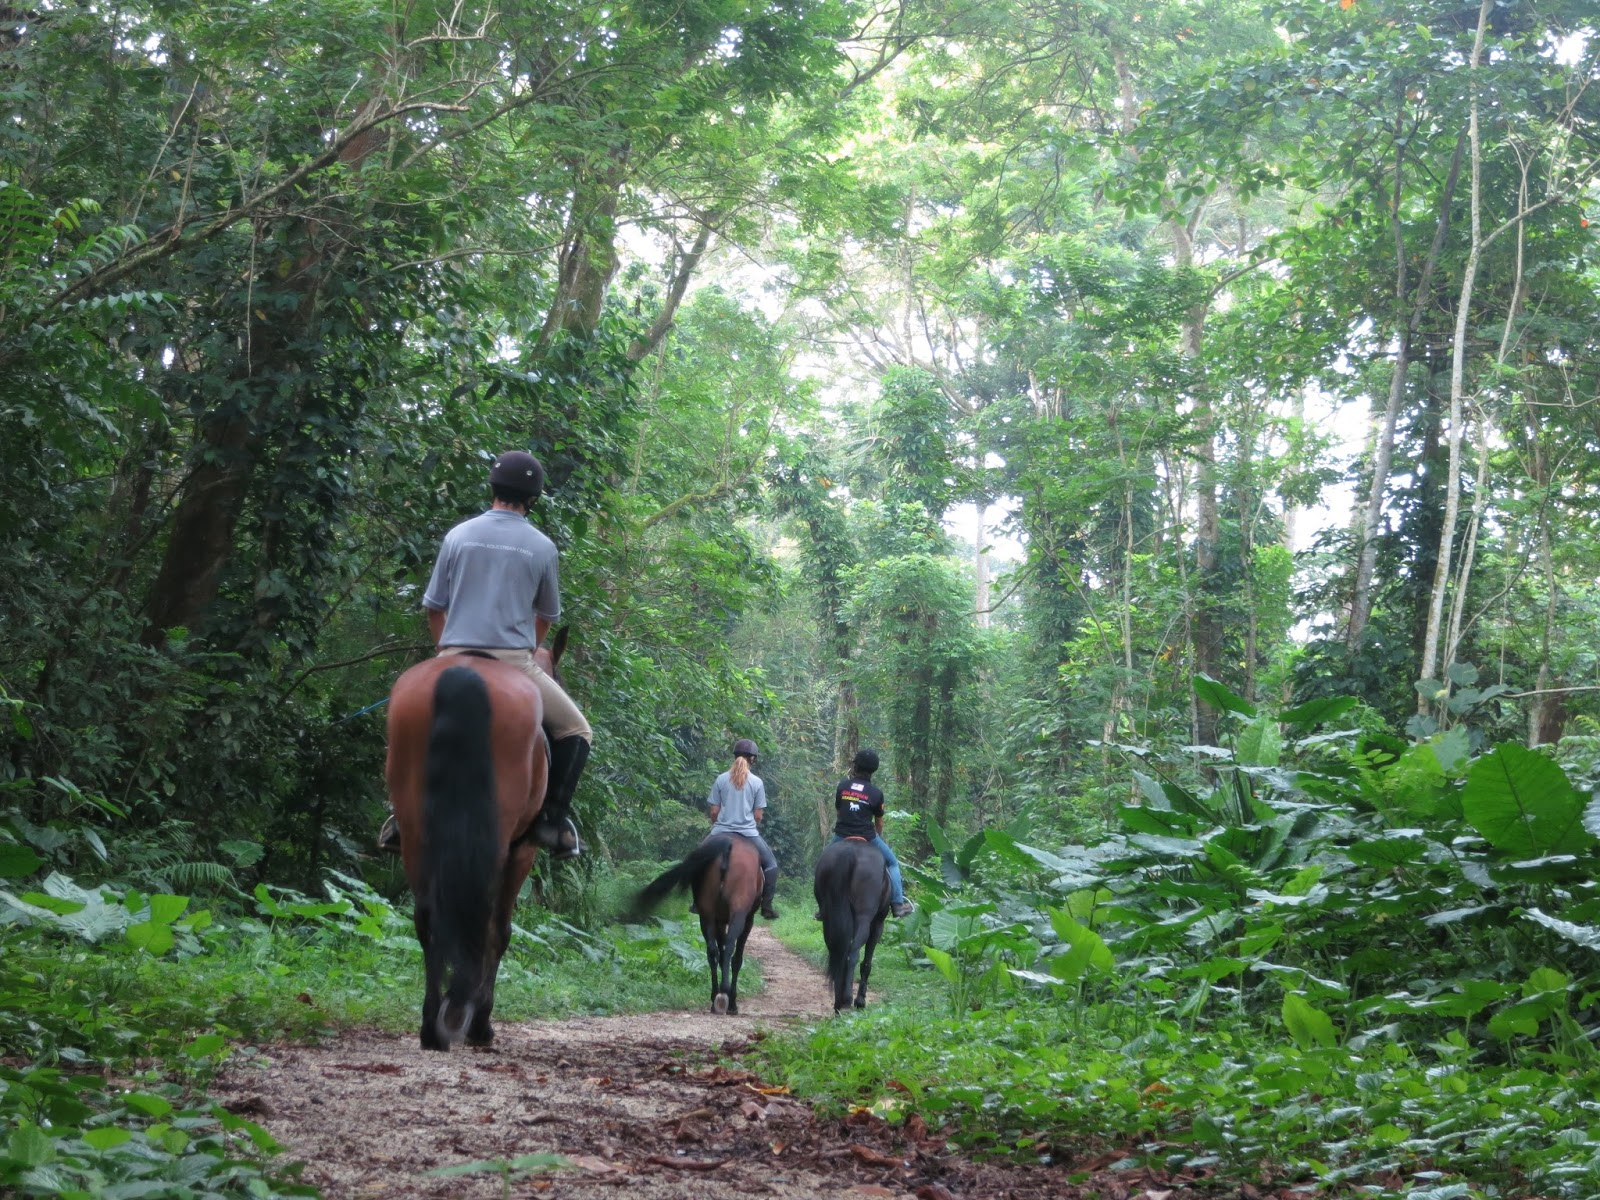 Singapore Polo Club riders taking their horses for a trot through Bukit Brown